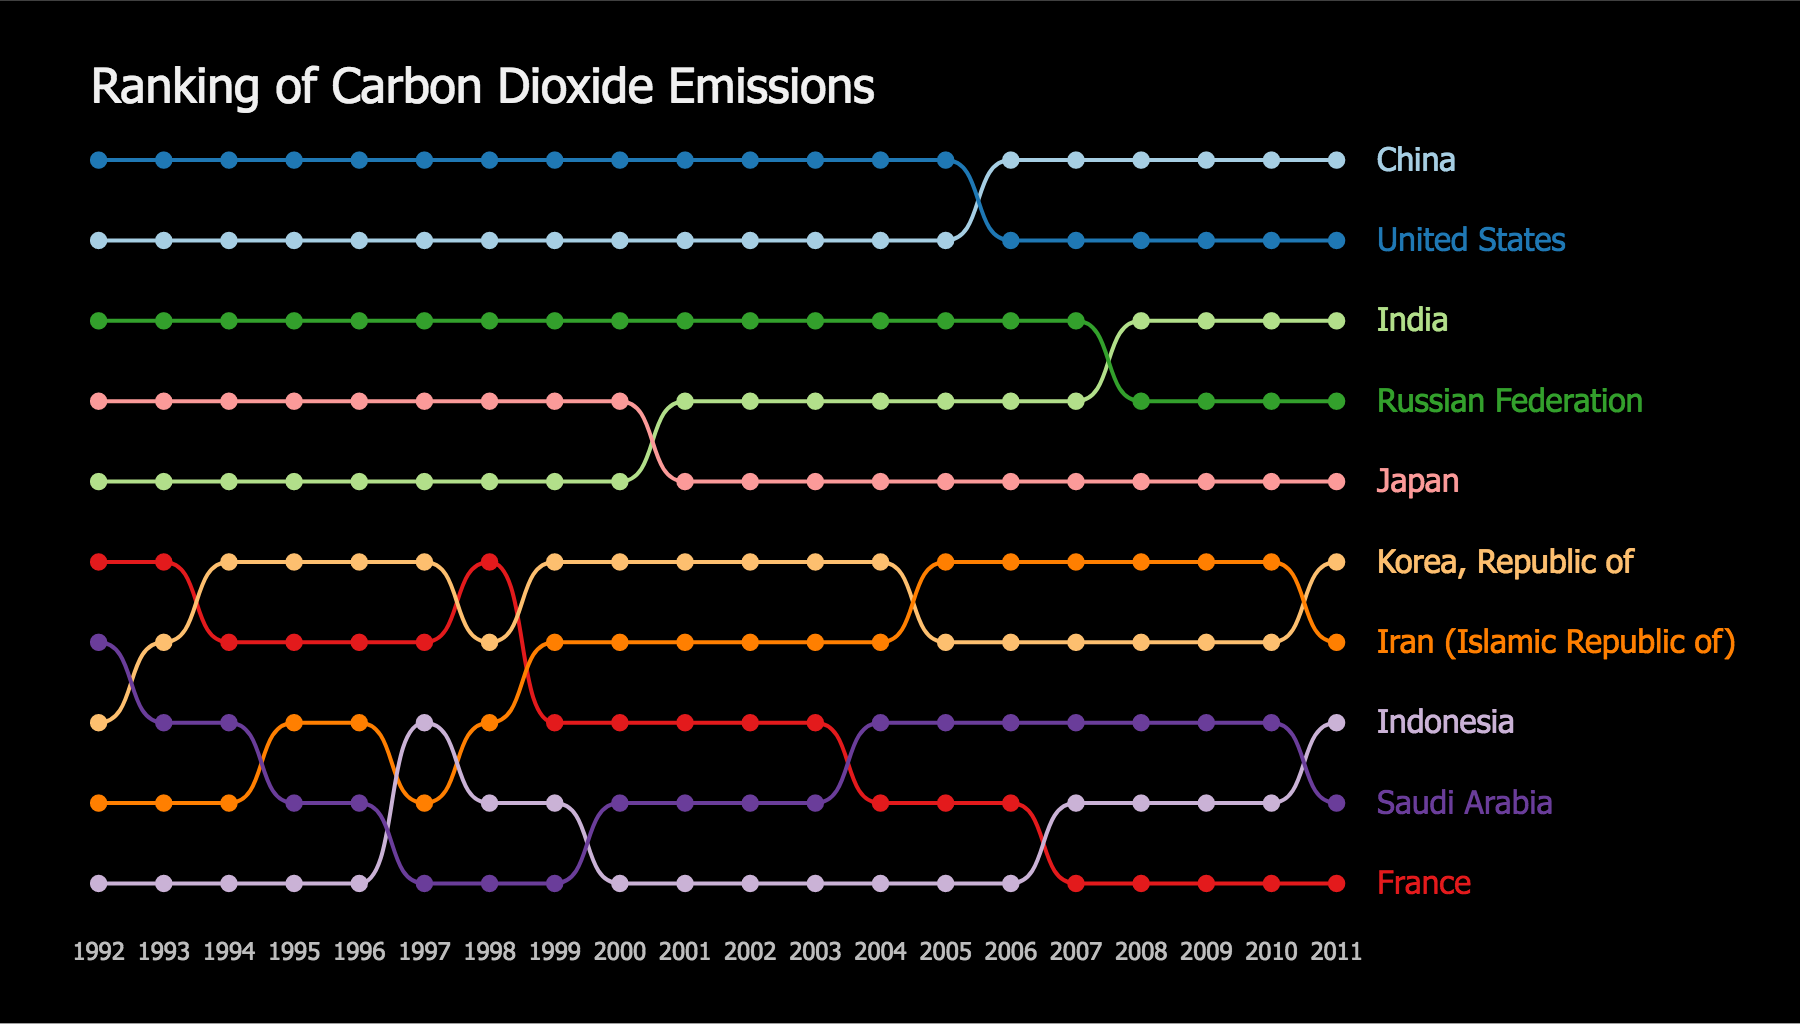 Ranking of Carbon Dioxide Emissions